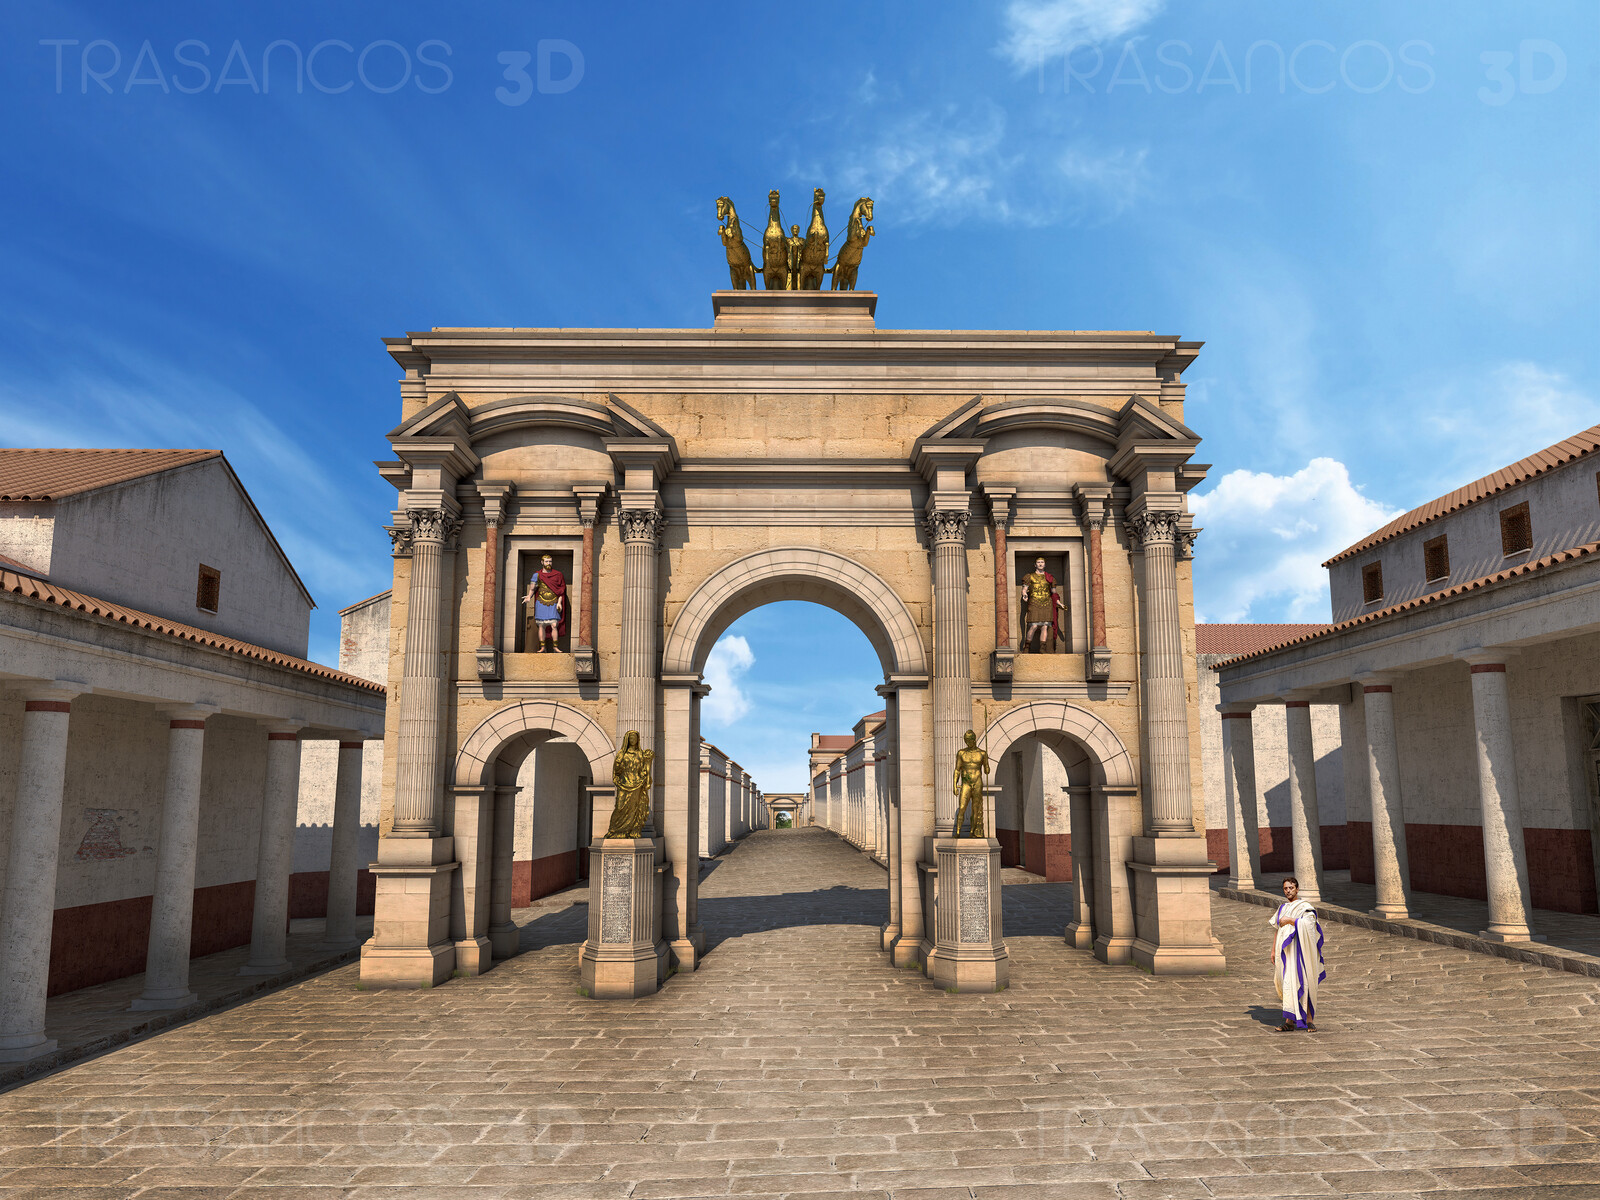 Reconstruciton of the Arc of Trajan in Timgad. Modeled in collaboration with: - Andrés Armesto